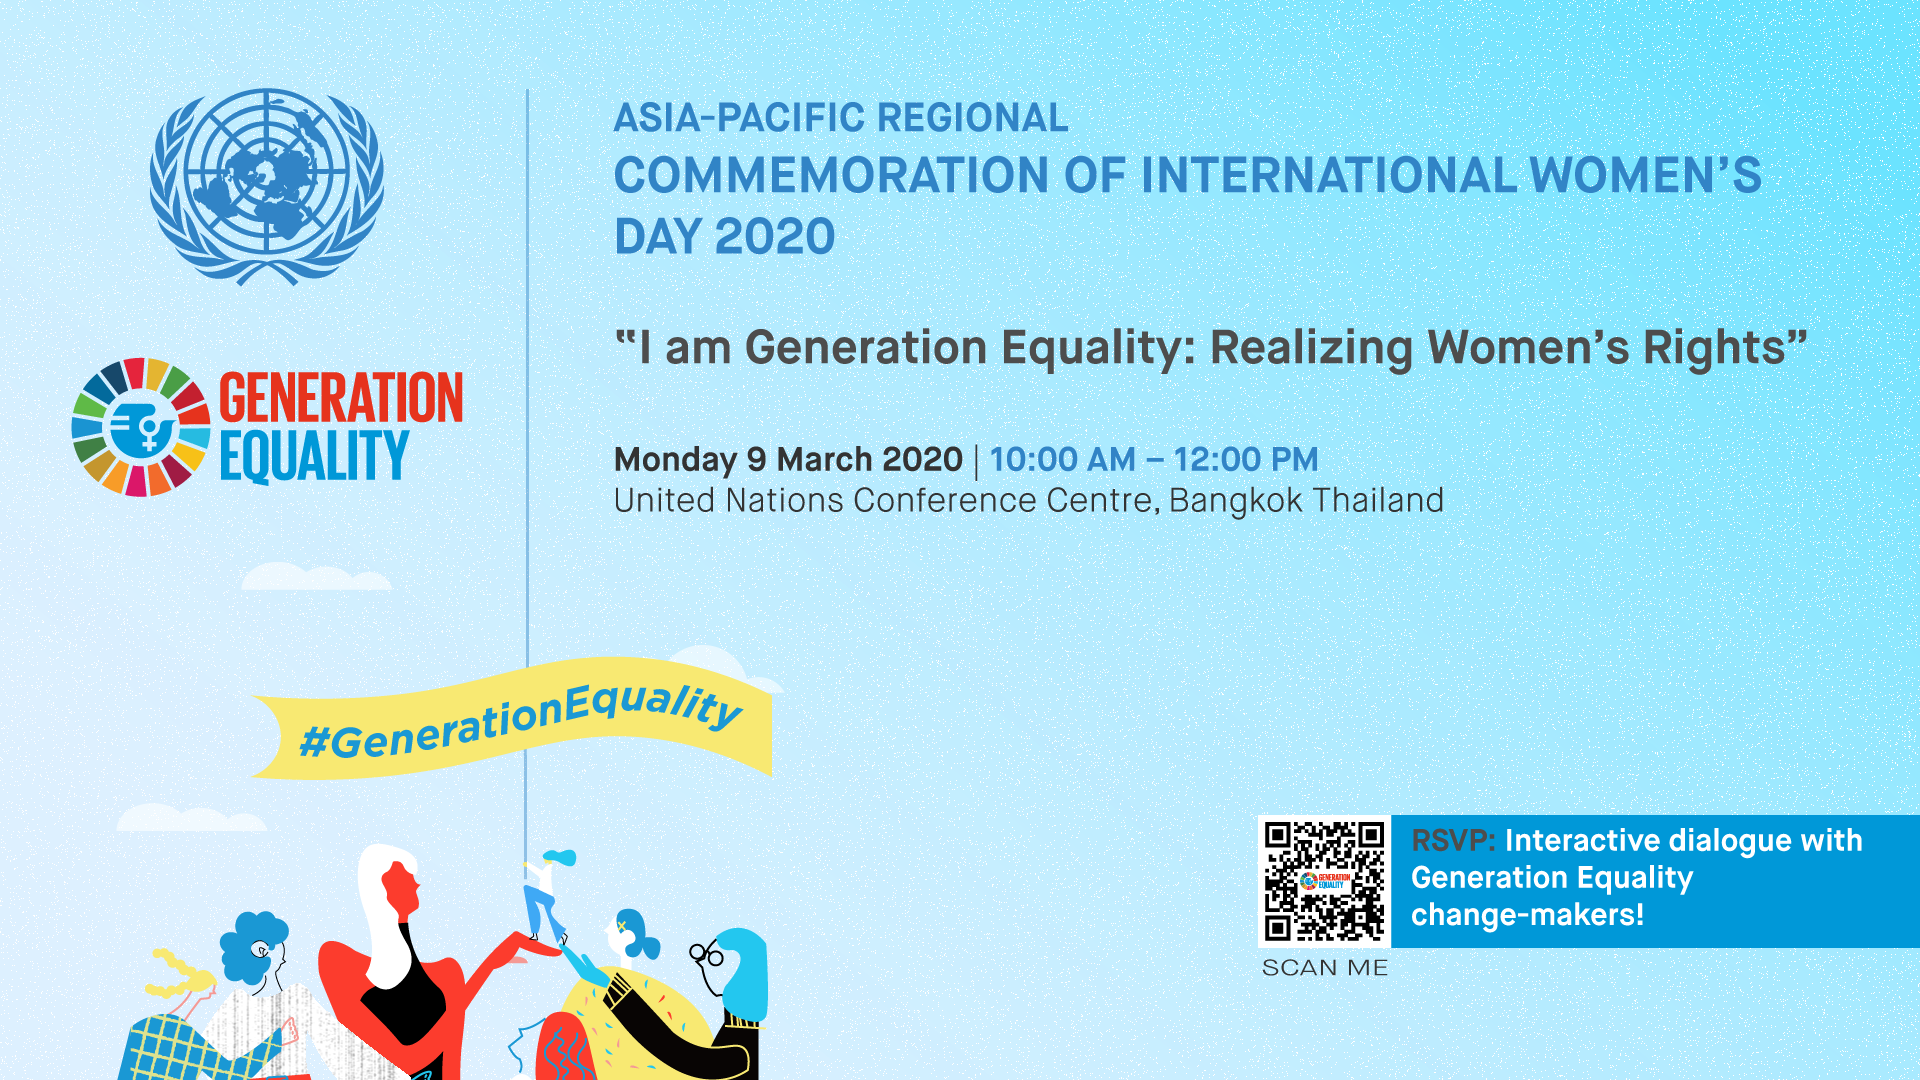 Young change-makers take the lead on realizing women's rights in Asia and the Pacific Regional Commemoration of International Women's Day 2020